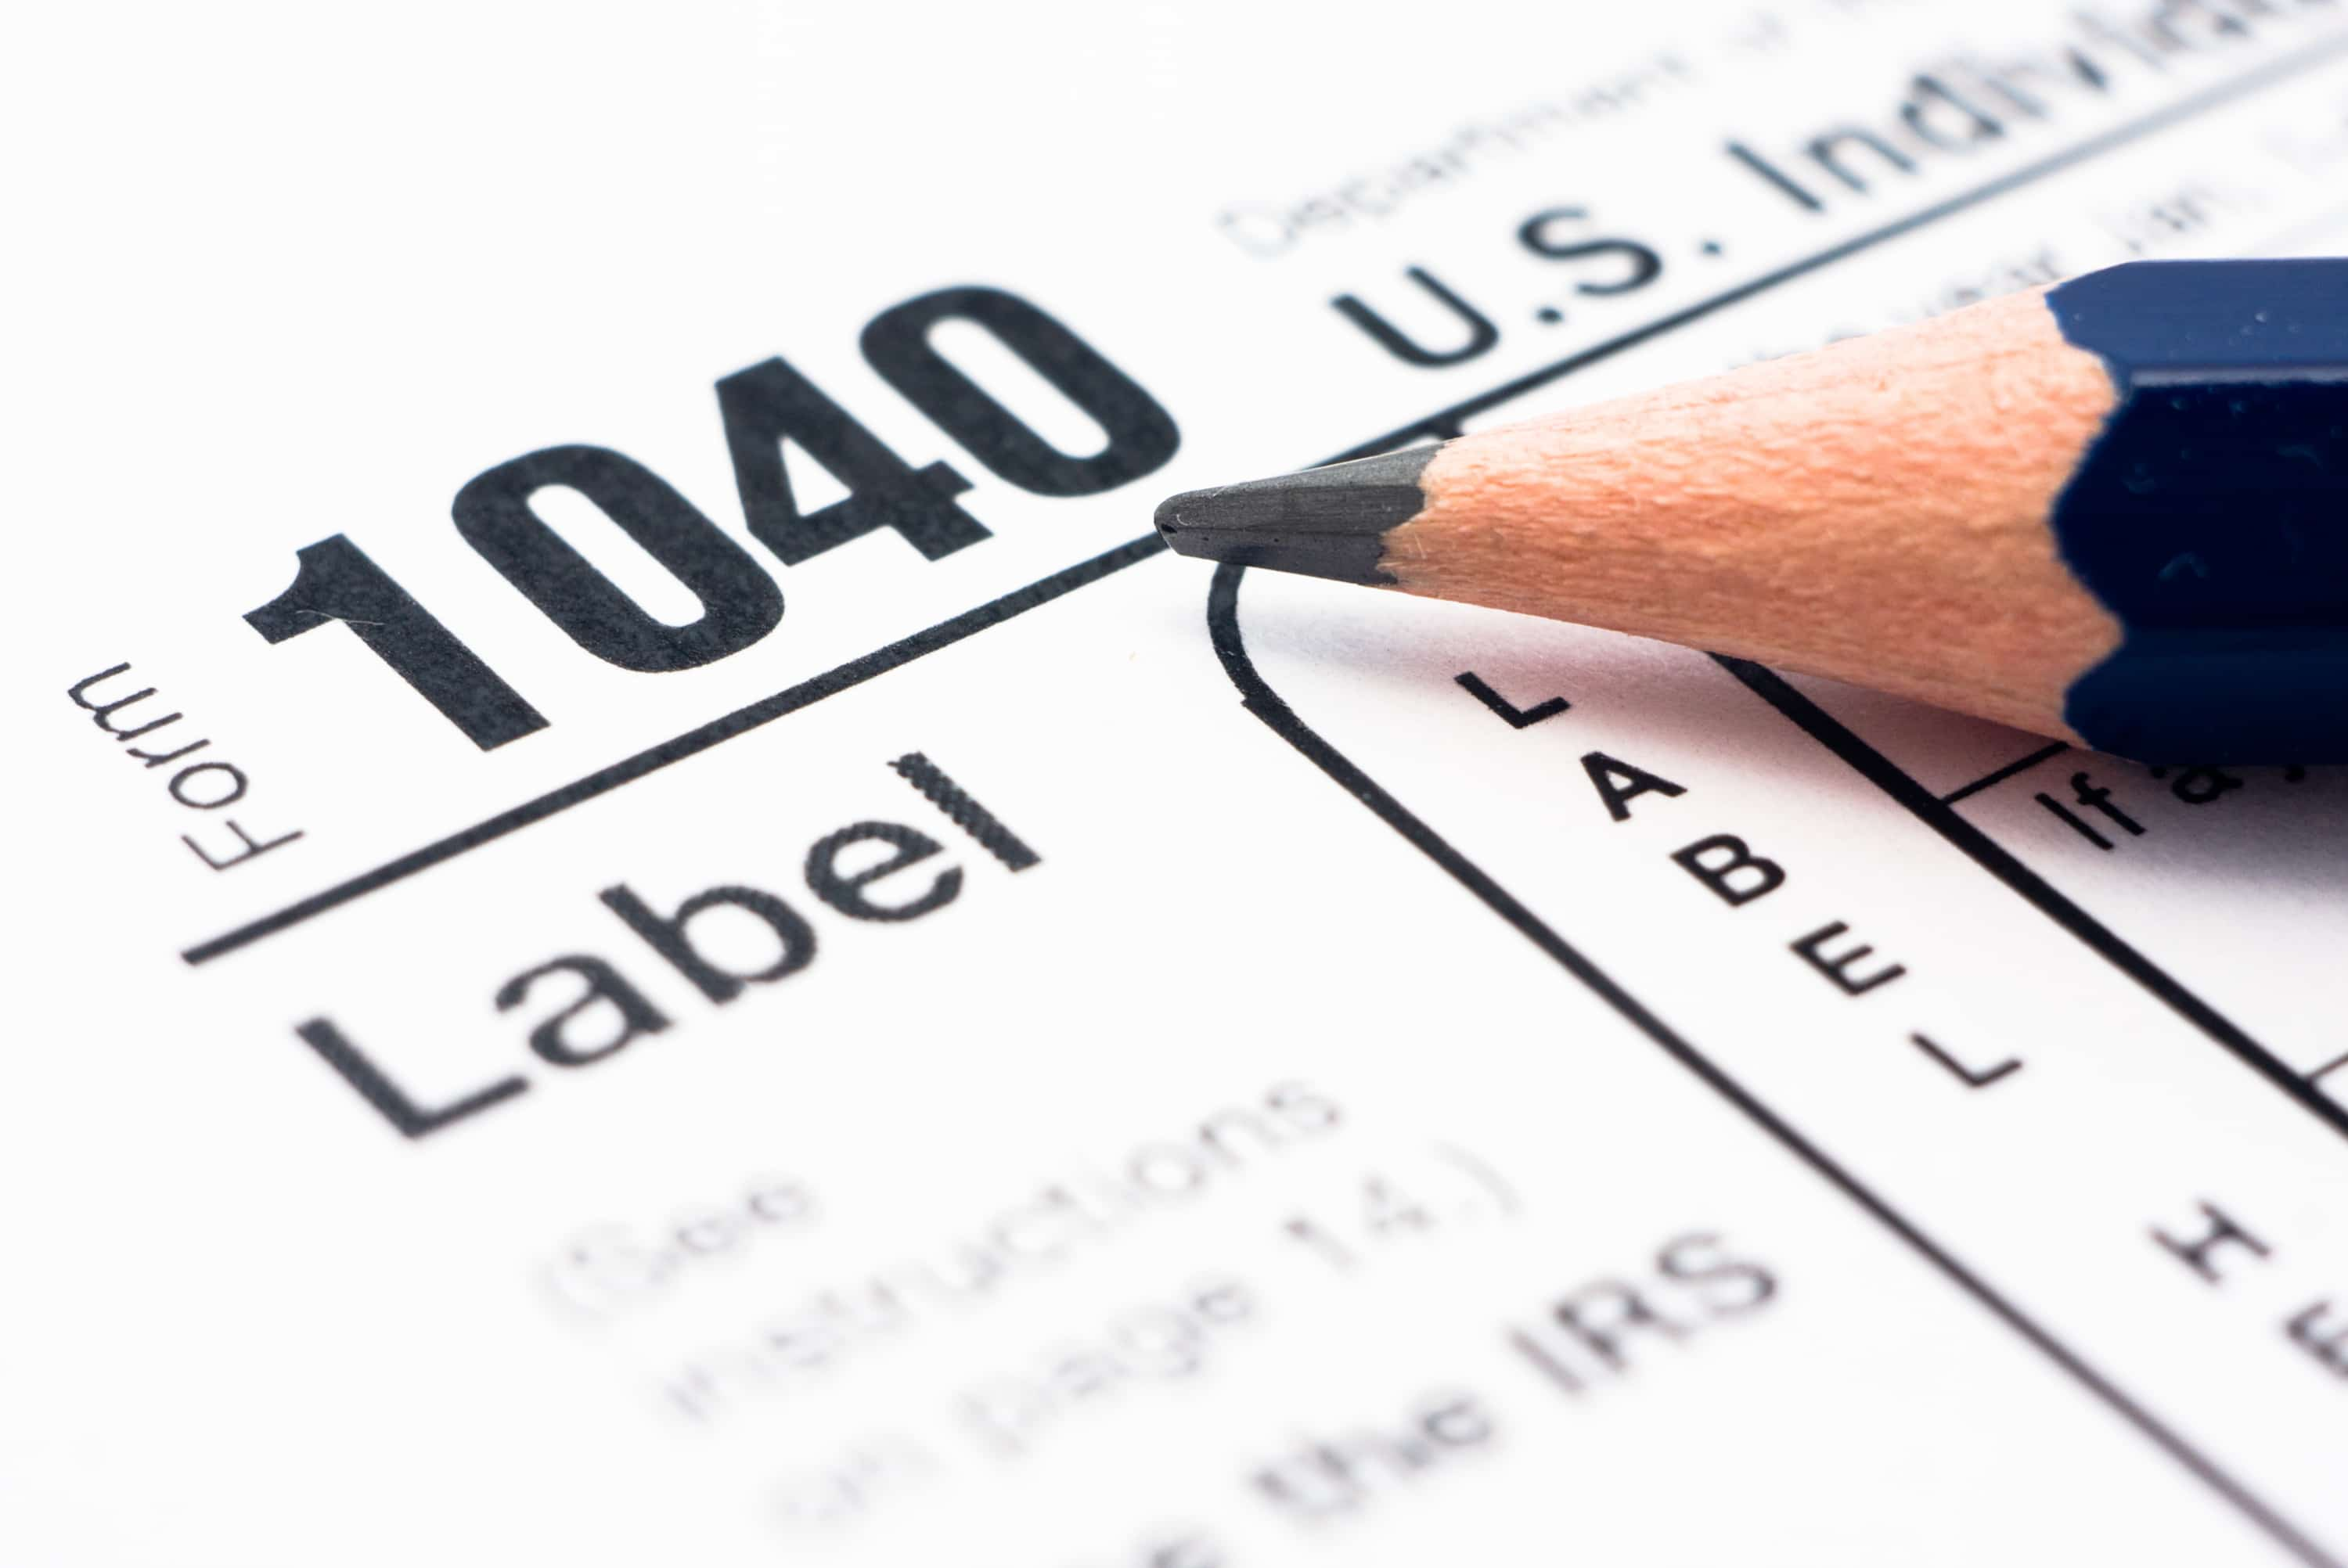 Irs Federal Tax Form 1040 Types Schedules Instructions